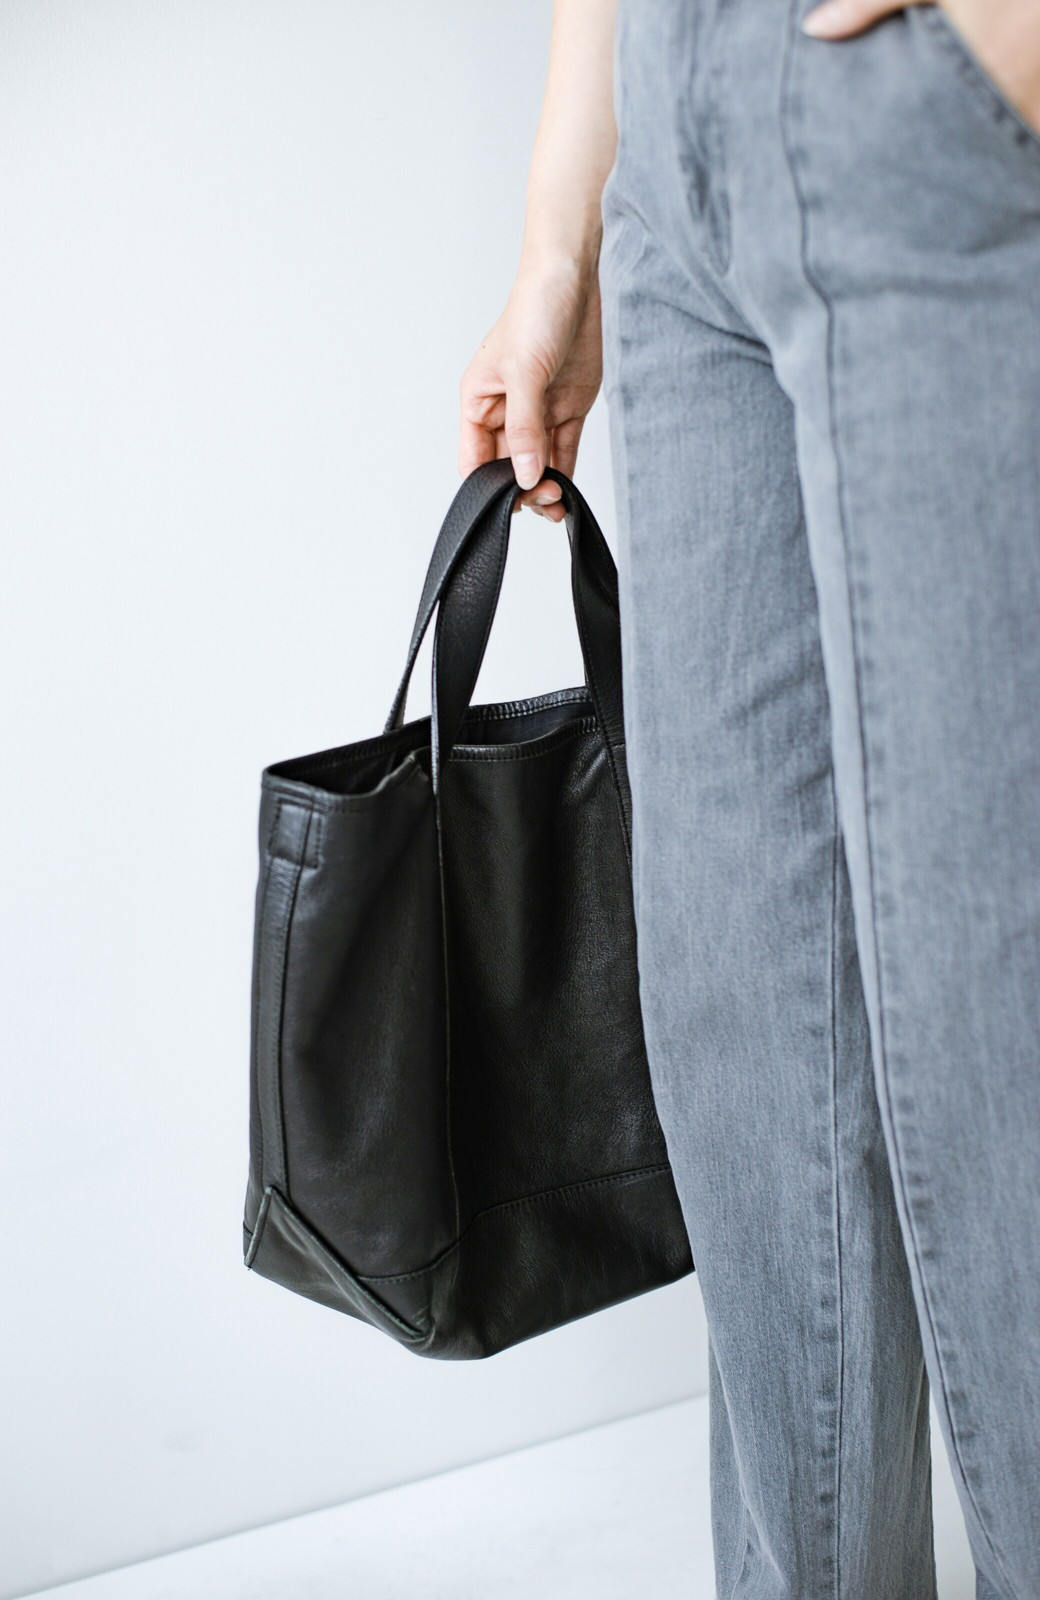 haco! made in JAPAN の本革トートバッグ by que made me <ブラック>の商品写真10